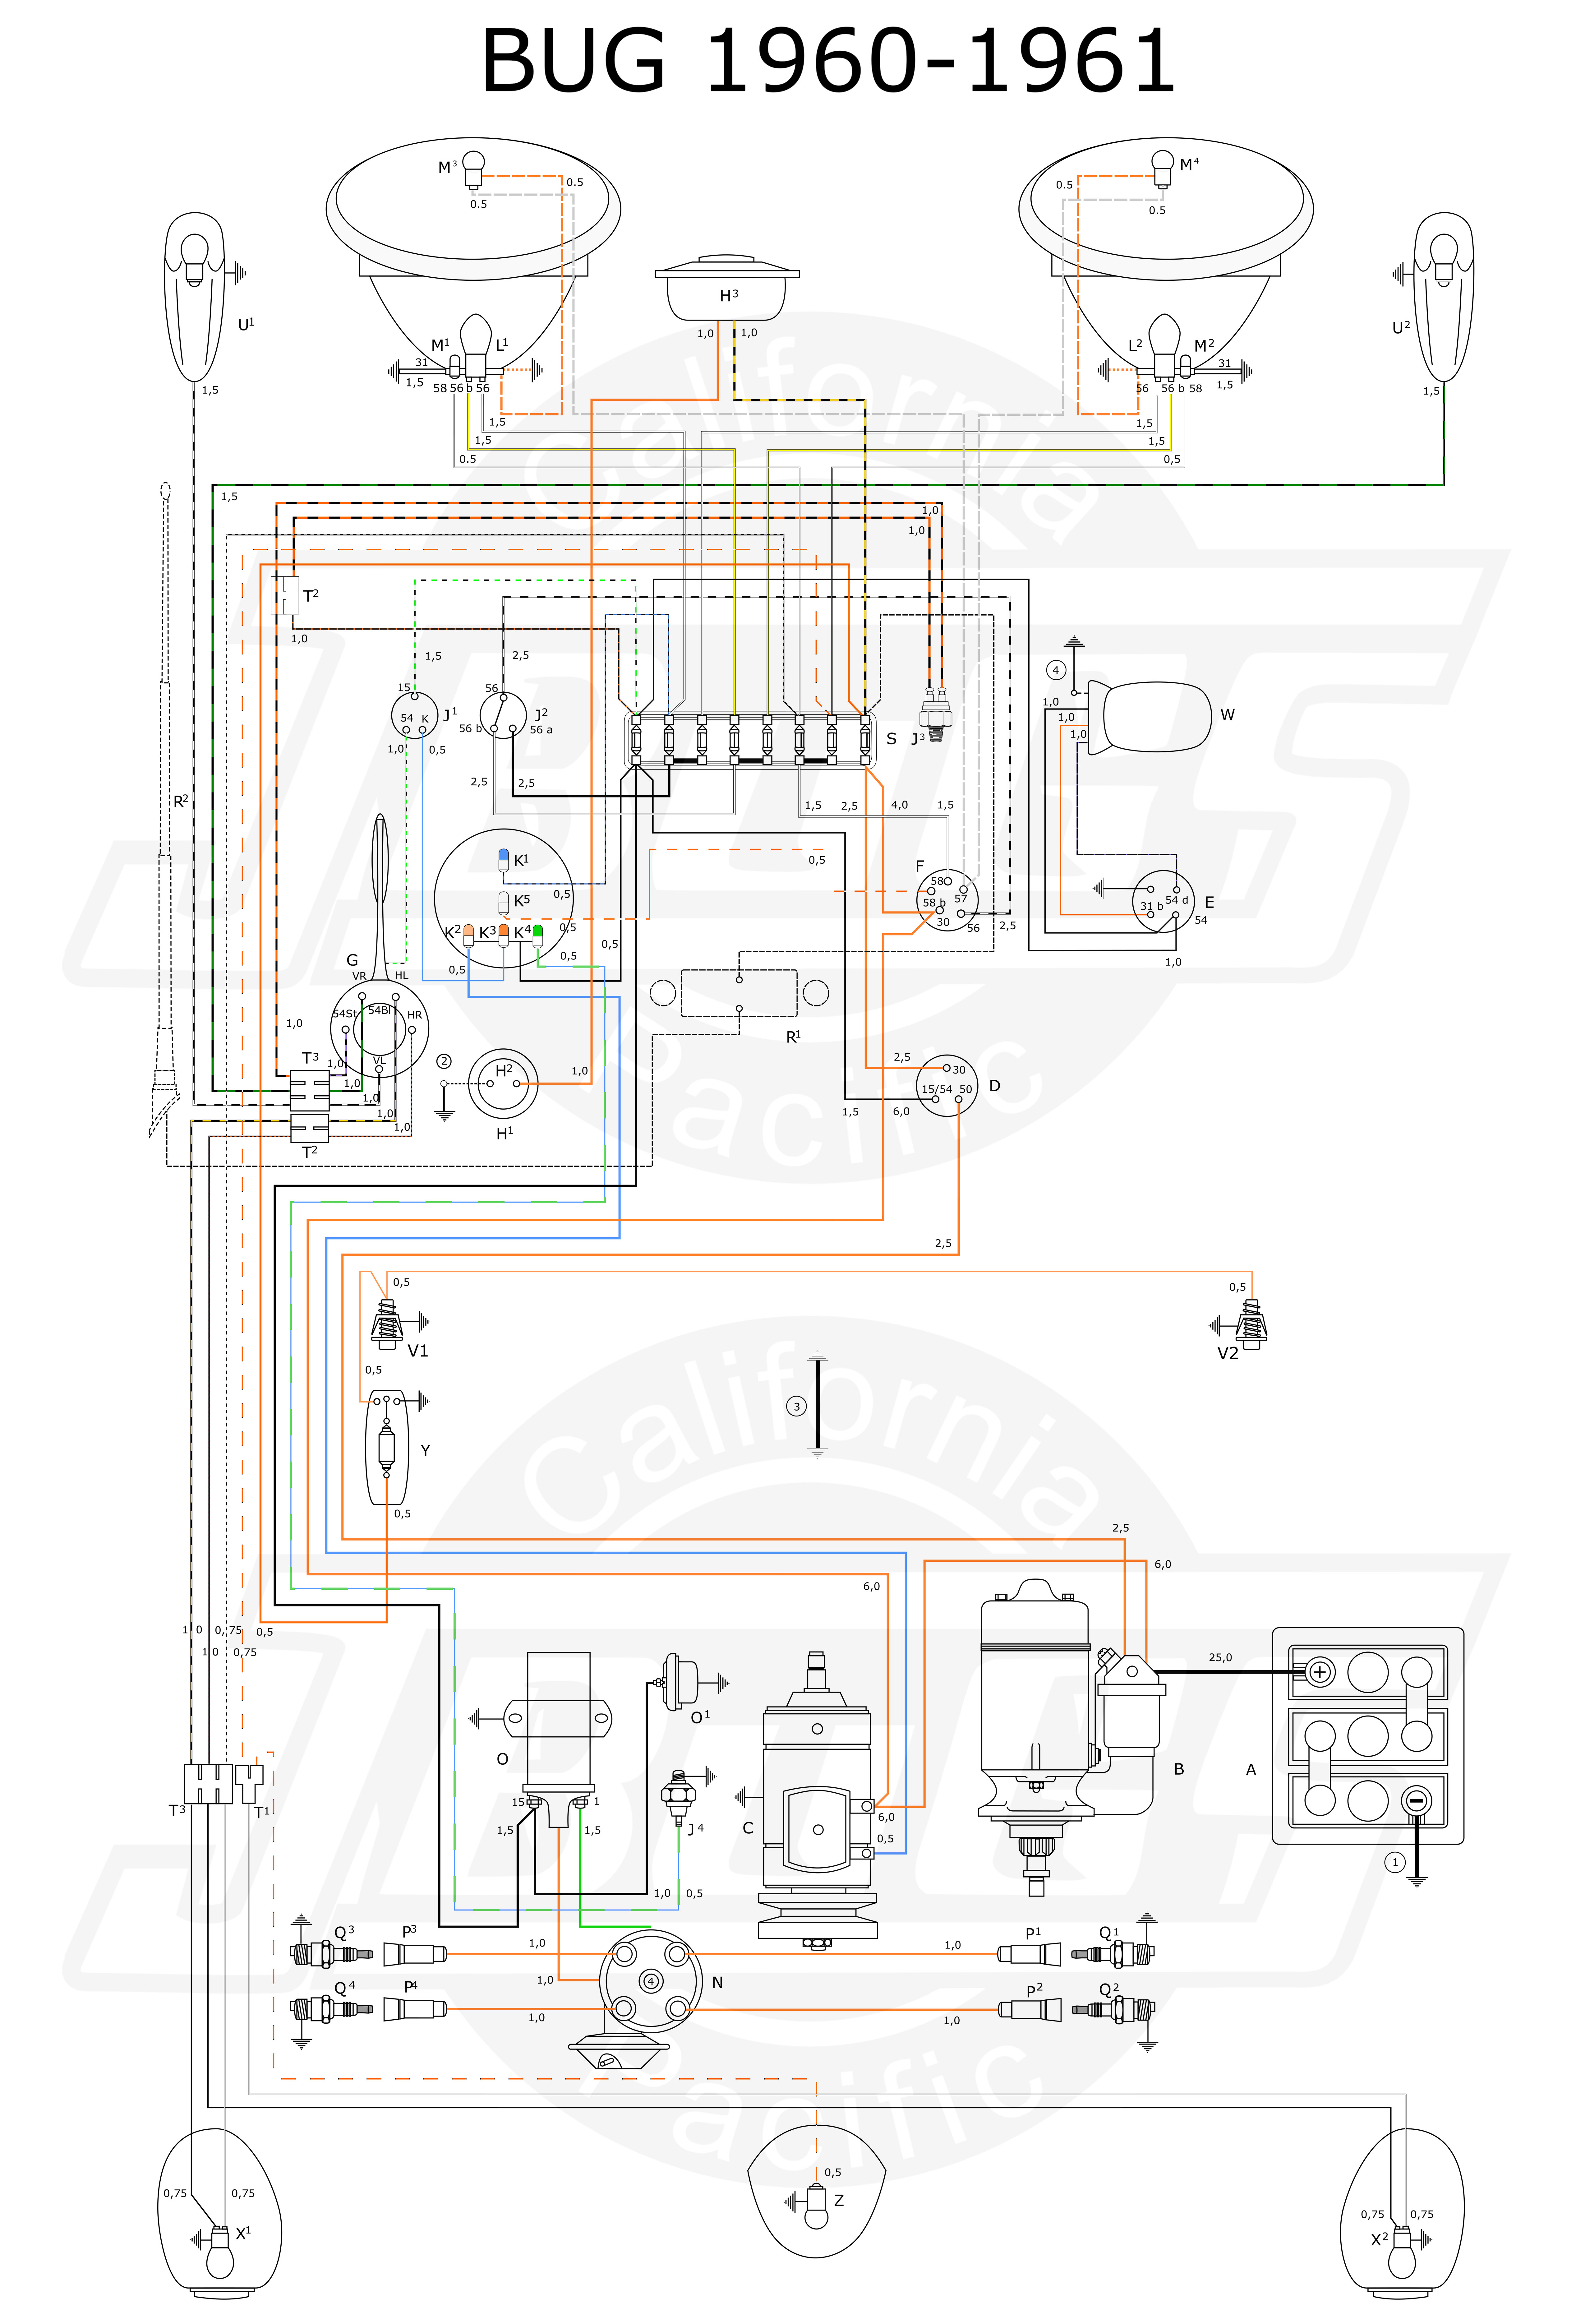 VW Bug 1960 61 Wiring Diagram carburetor wiring diagram basic carburetor diagram \u2022 free wiring wiring a car battery at eliteediting.co